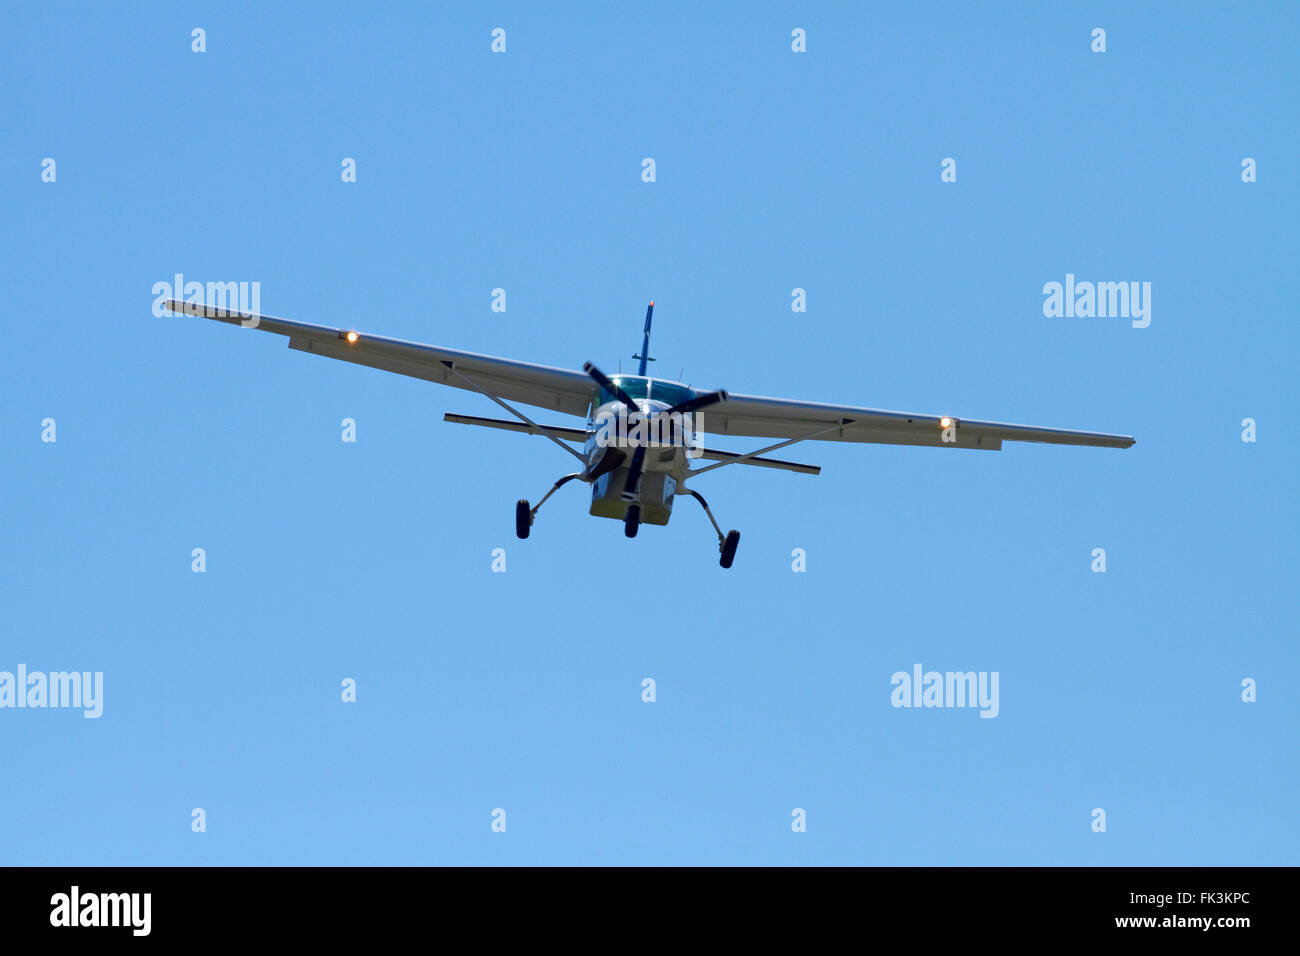 Air Milford tourist plane (Cessna 208) landing at Queenstown Airport, Otago, South Island, New Zealand - Stock Image